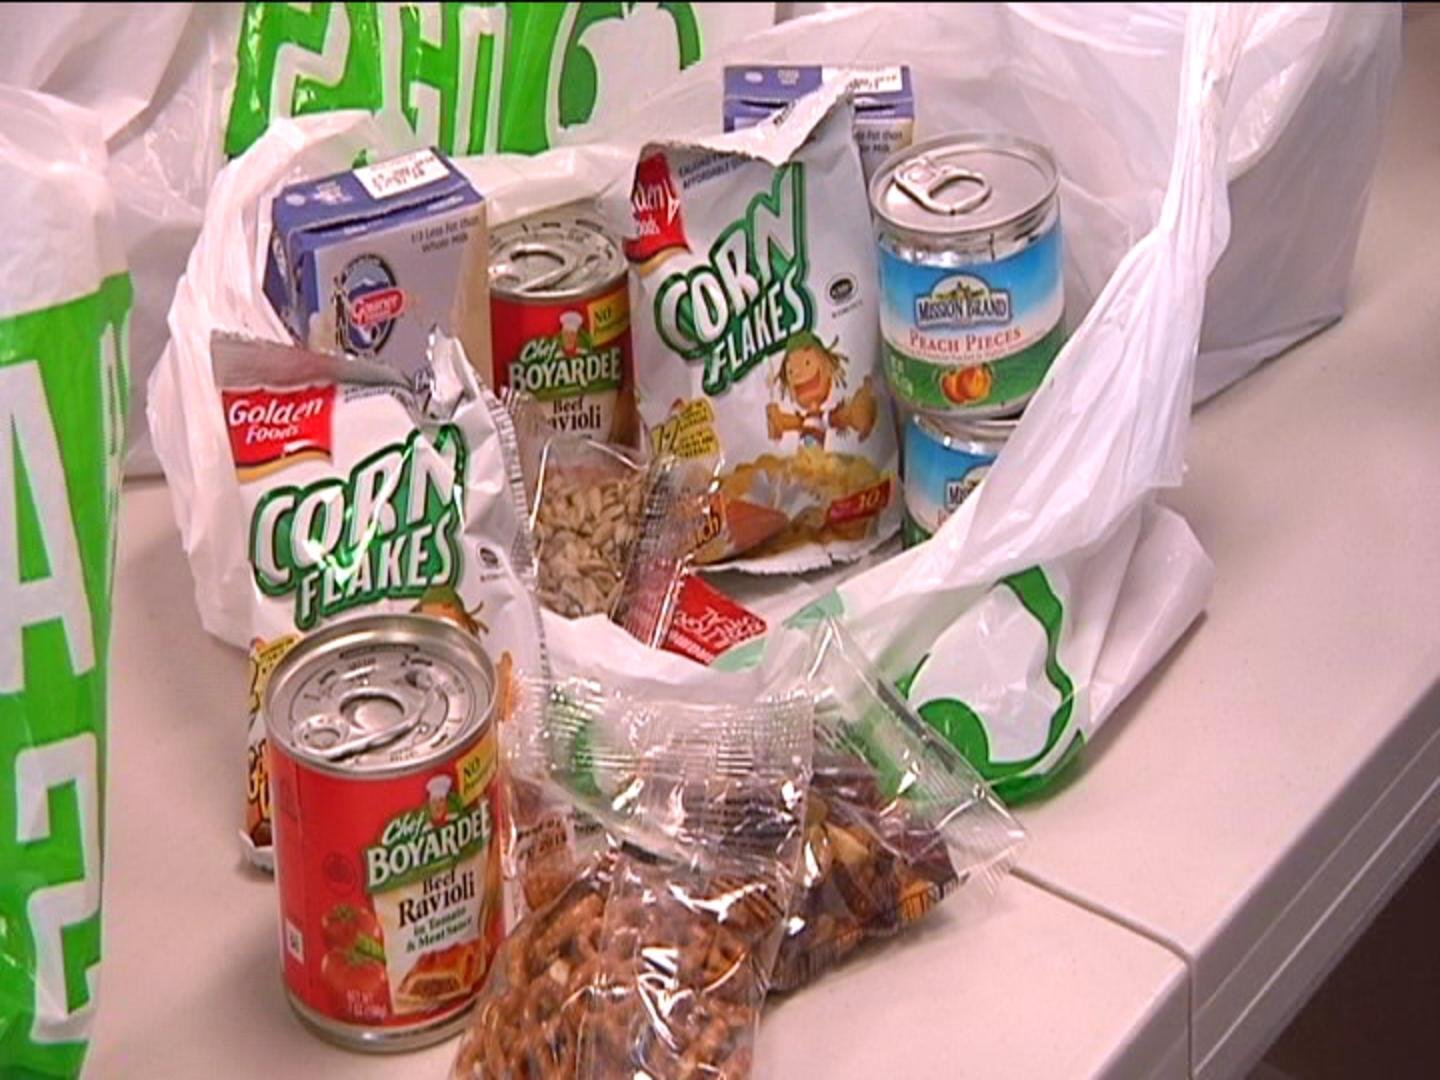 The kits include several non-perishable items for kids to eat over the weekends.